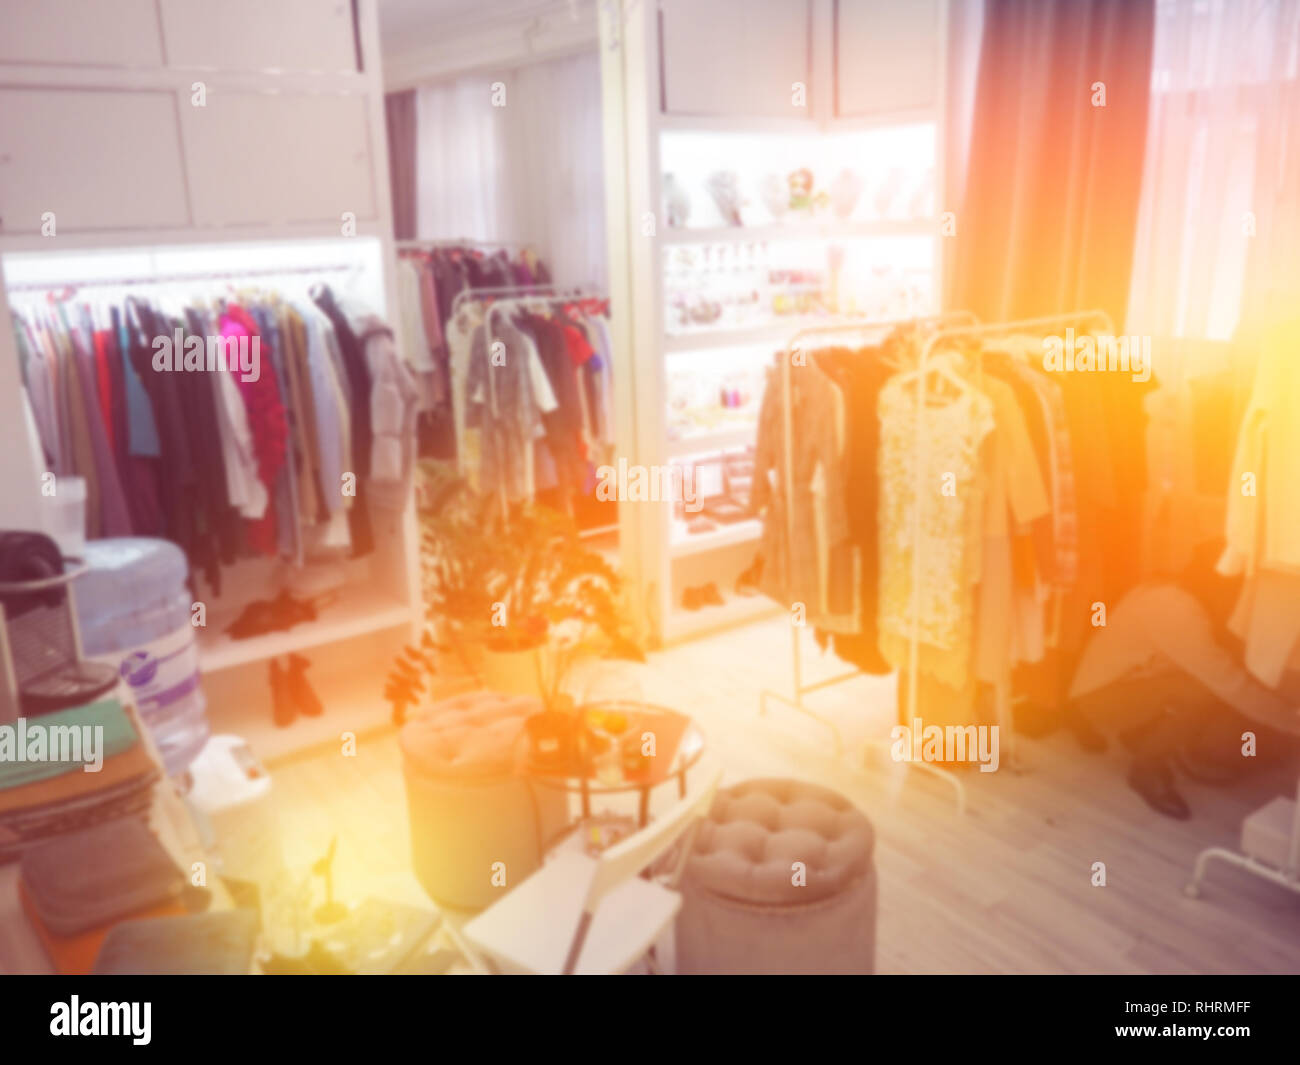 blurred clothes on hanger in clothing store. Abstract blur and defocused shopping mall of department store interior for background. Stock Photo